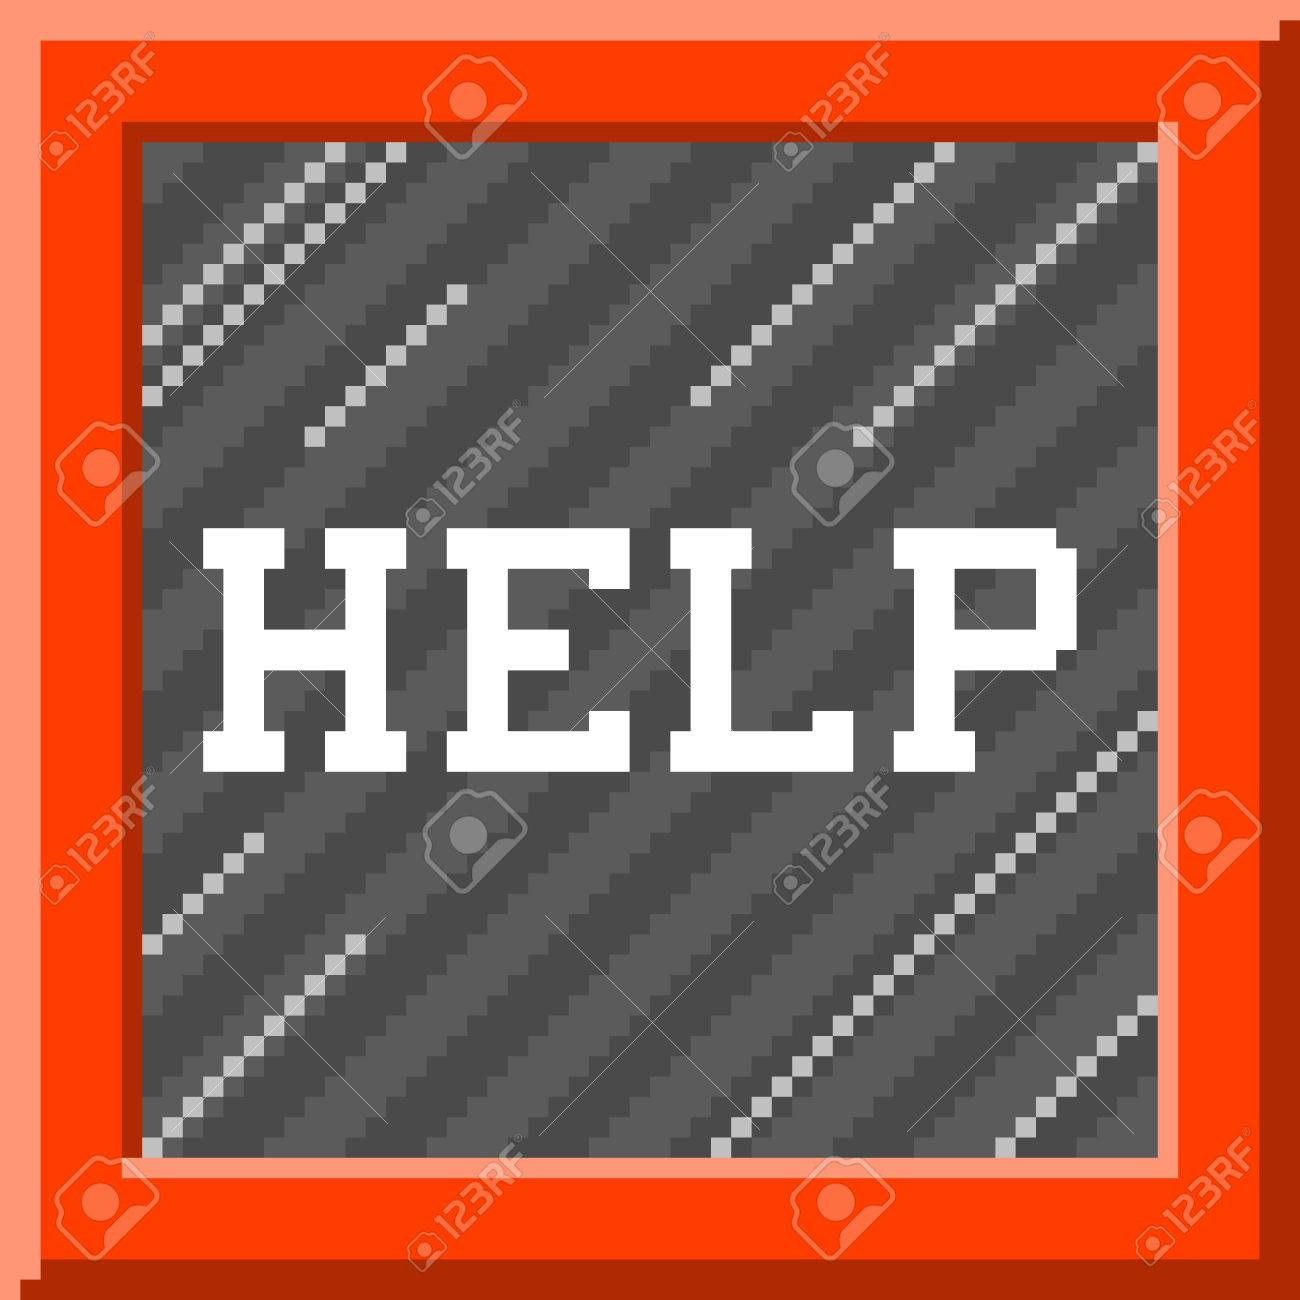 Help message written inside a �in case of emergency, break glass� box, in a 8-bit pixel-art style Stock Vector - 58851561